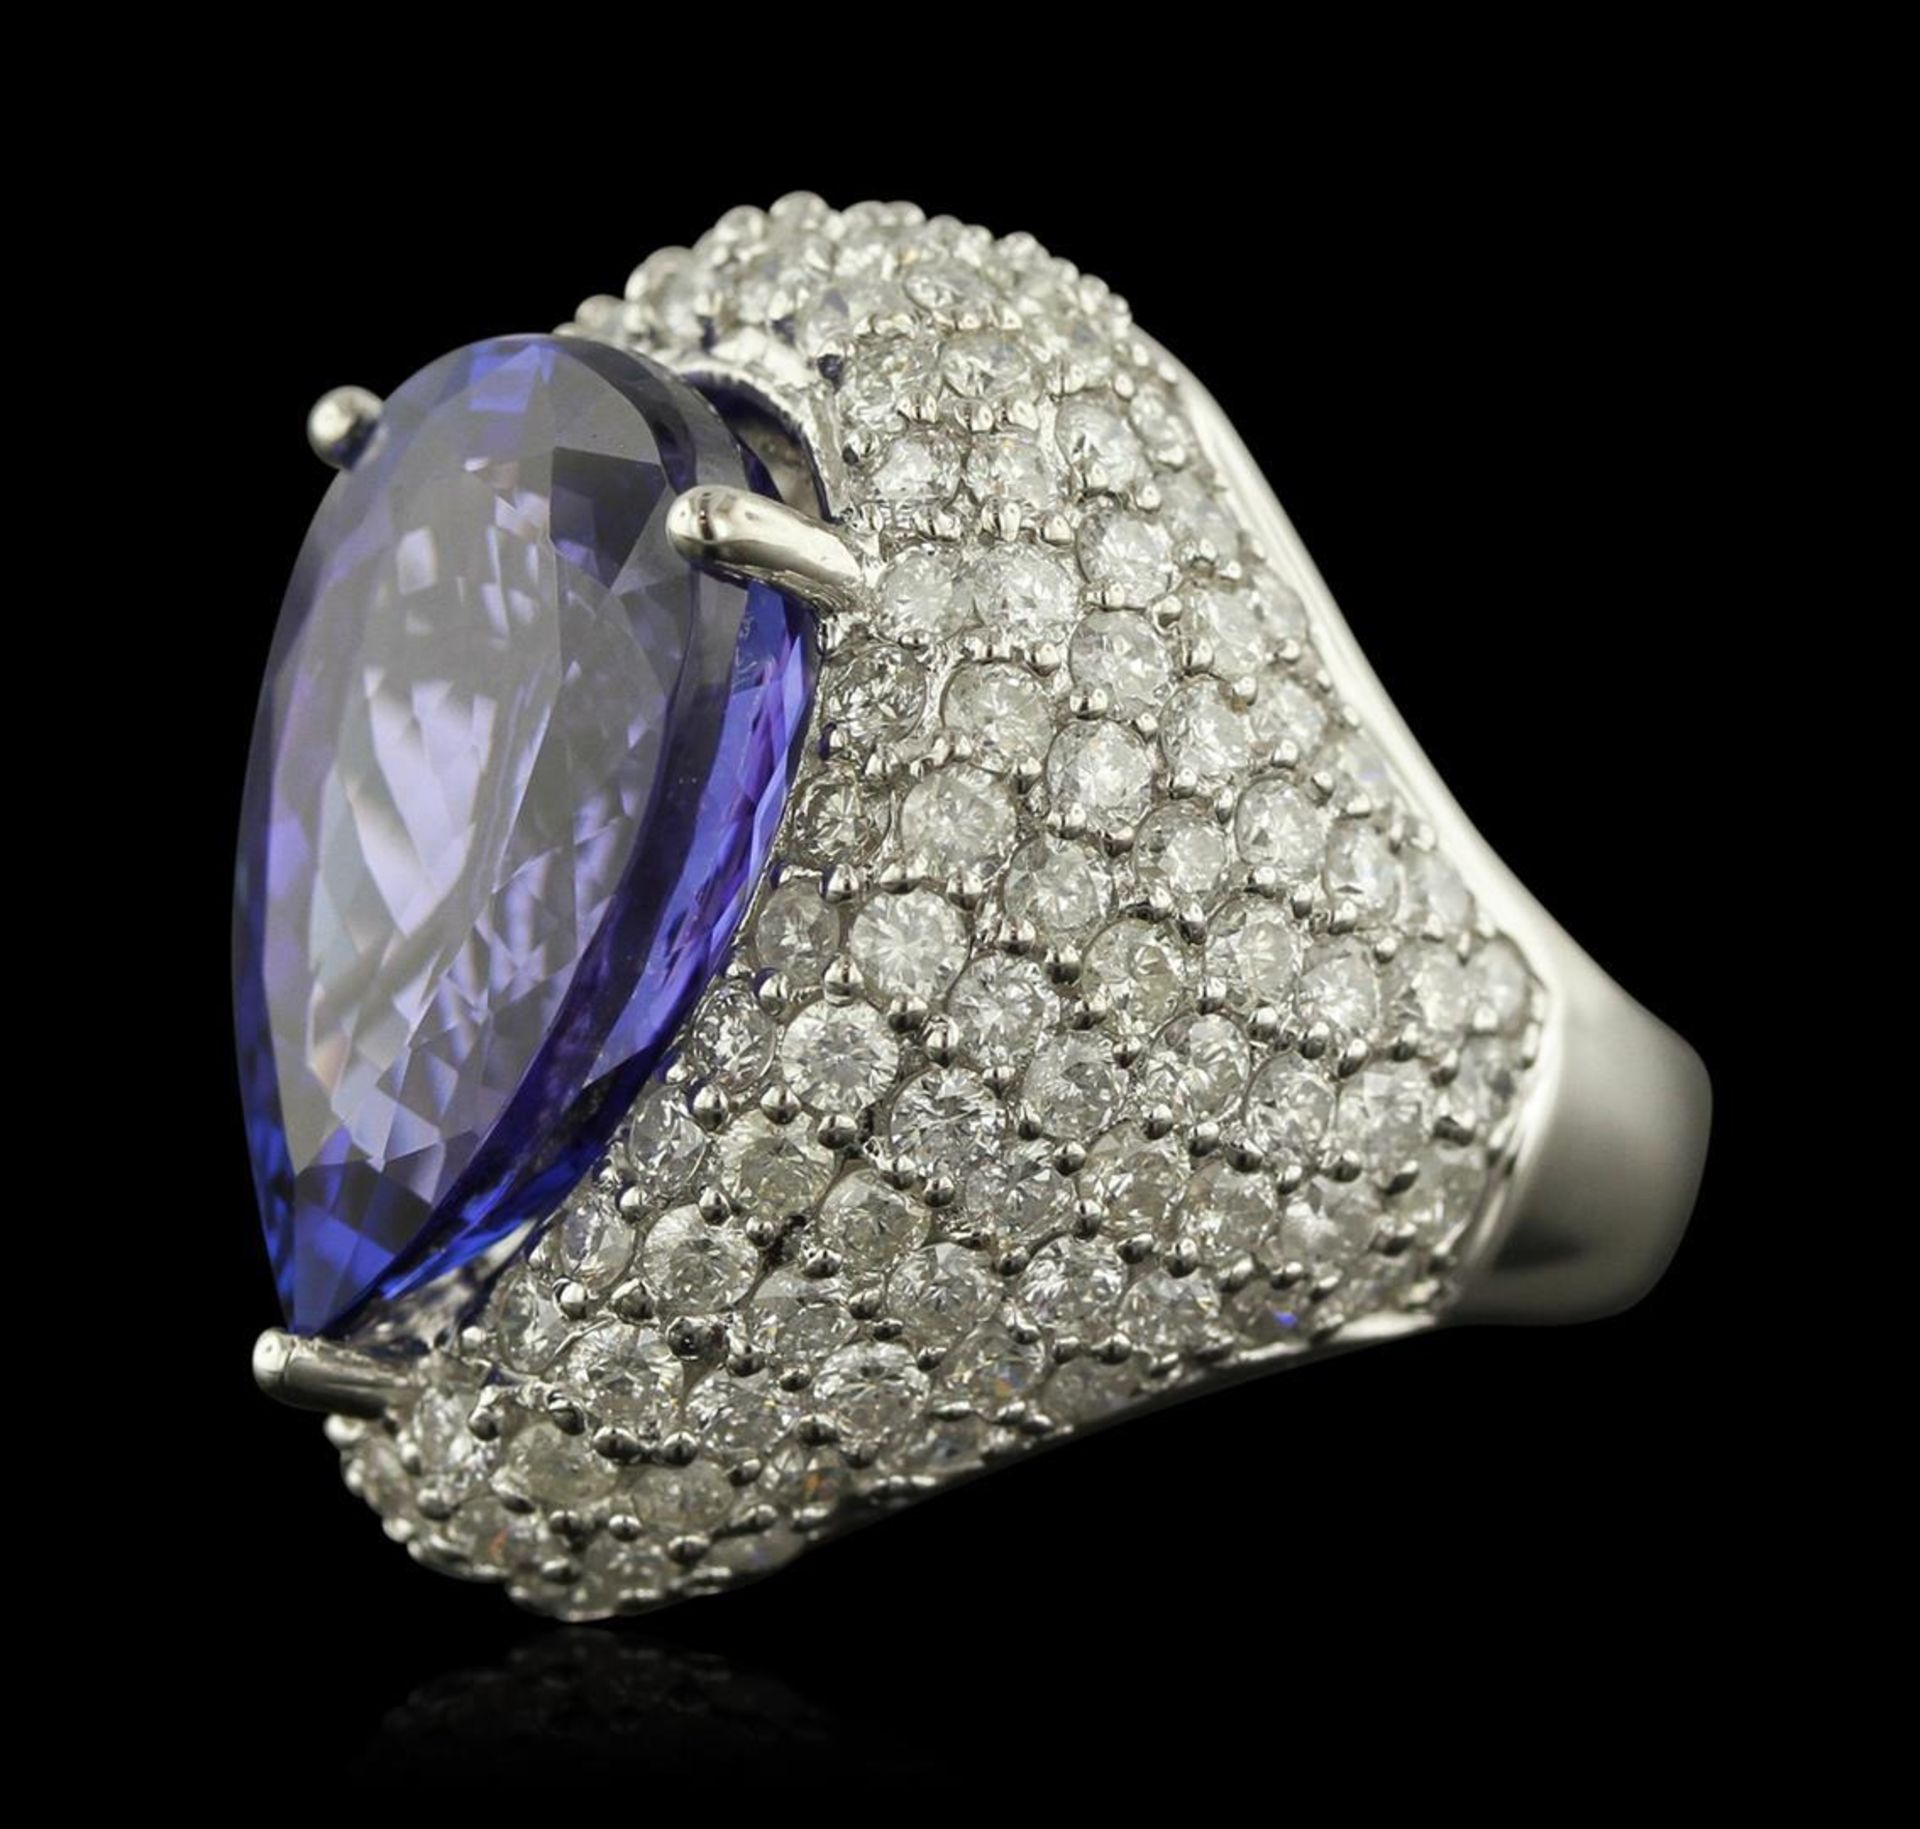 14KT White Gold 14.82 ctw GIA Certified Tanzanite and Diamond Ring - Image 2 of 4